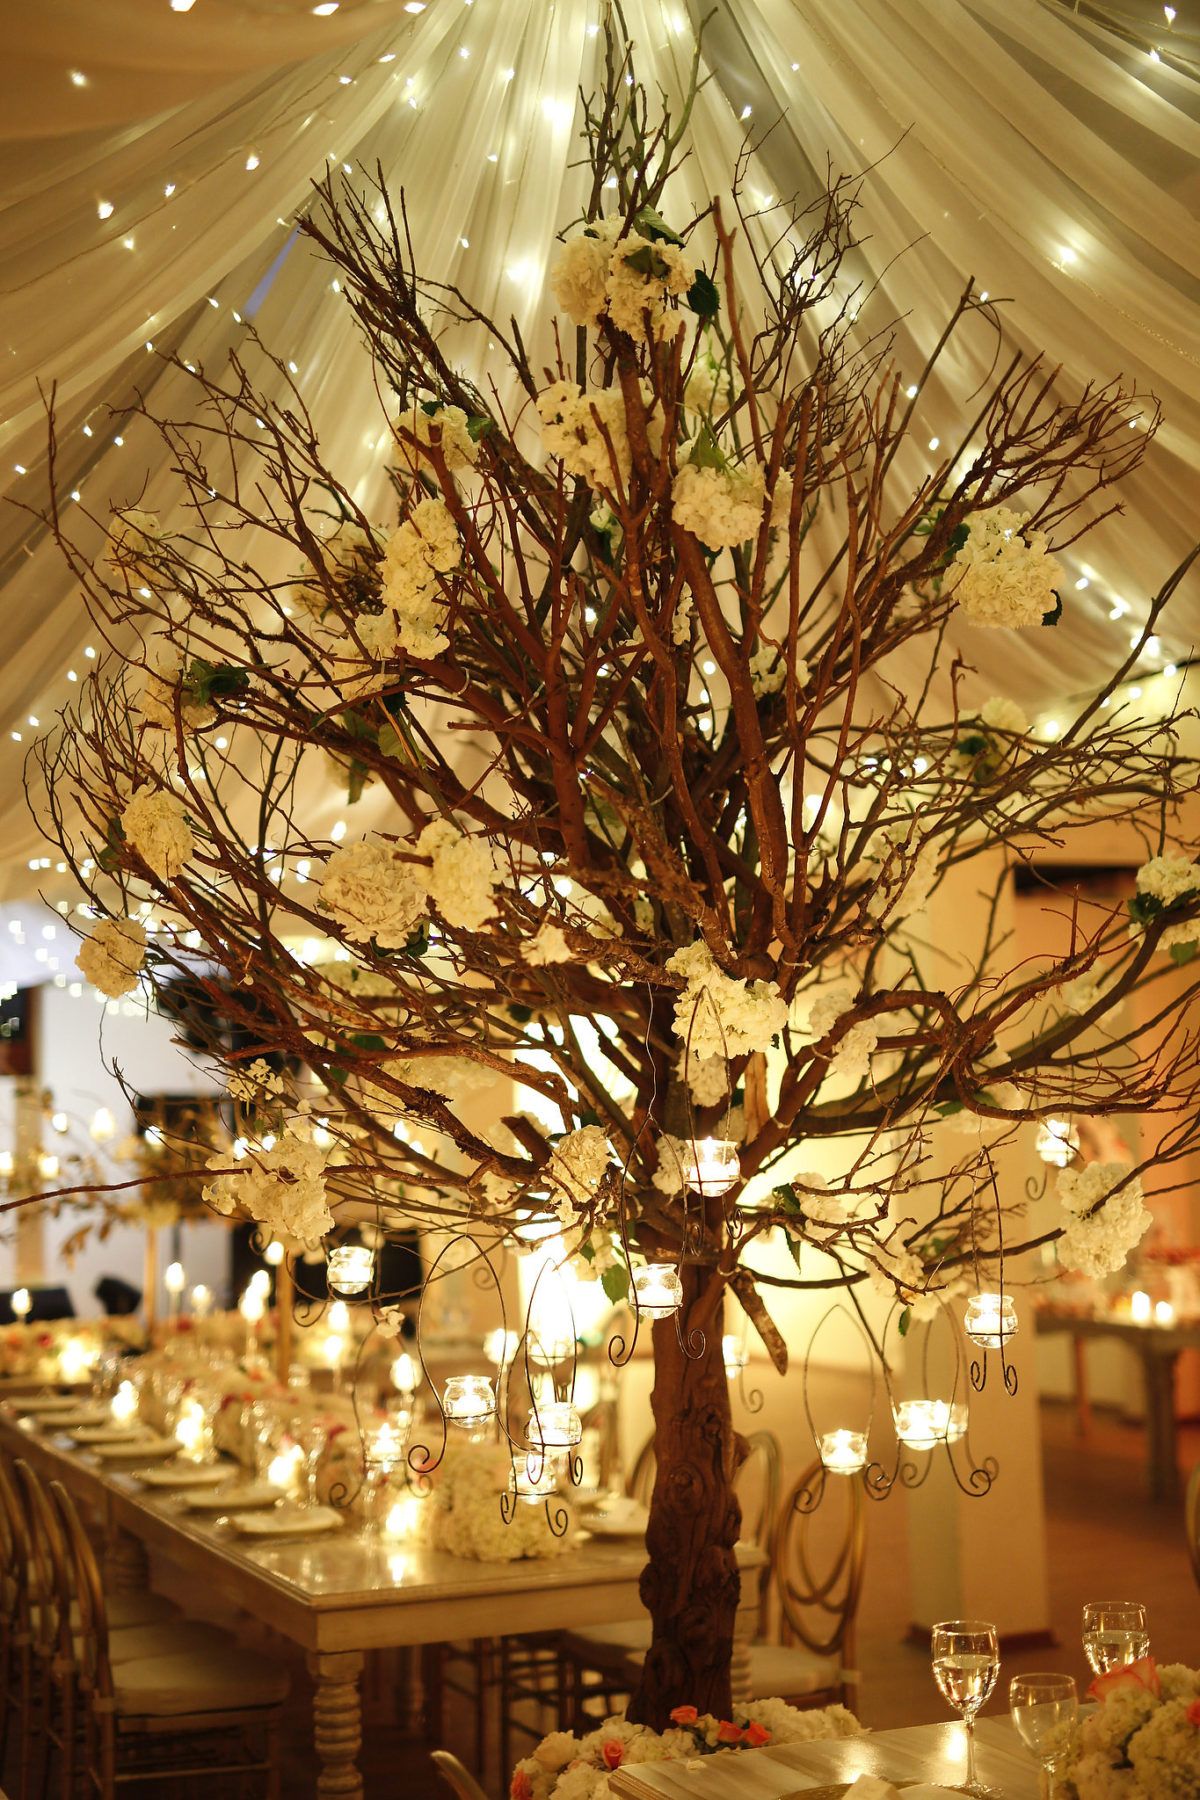 diastole y sistole, fotografia de boda, decoracion con árbol, árbol en la decoracion, decoration with tree, arbor iluminado,